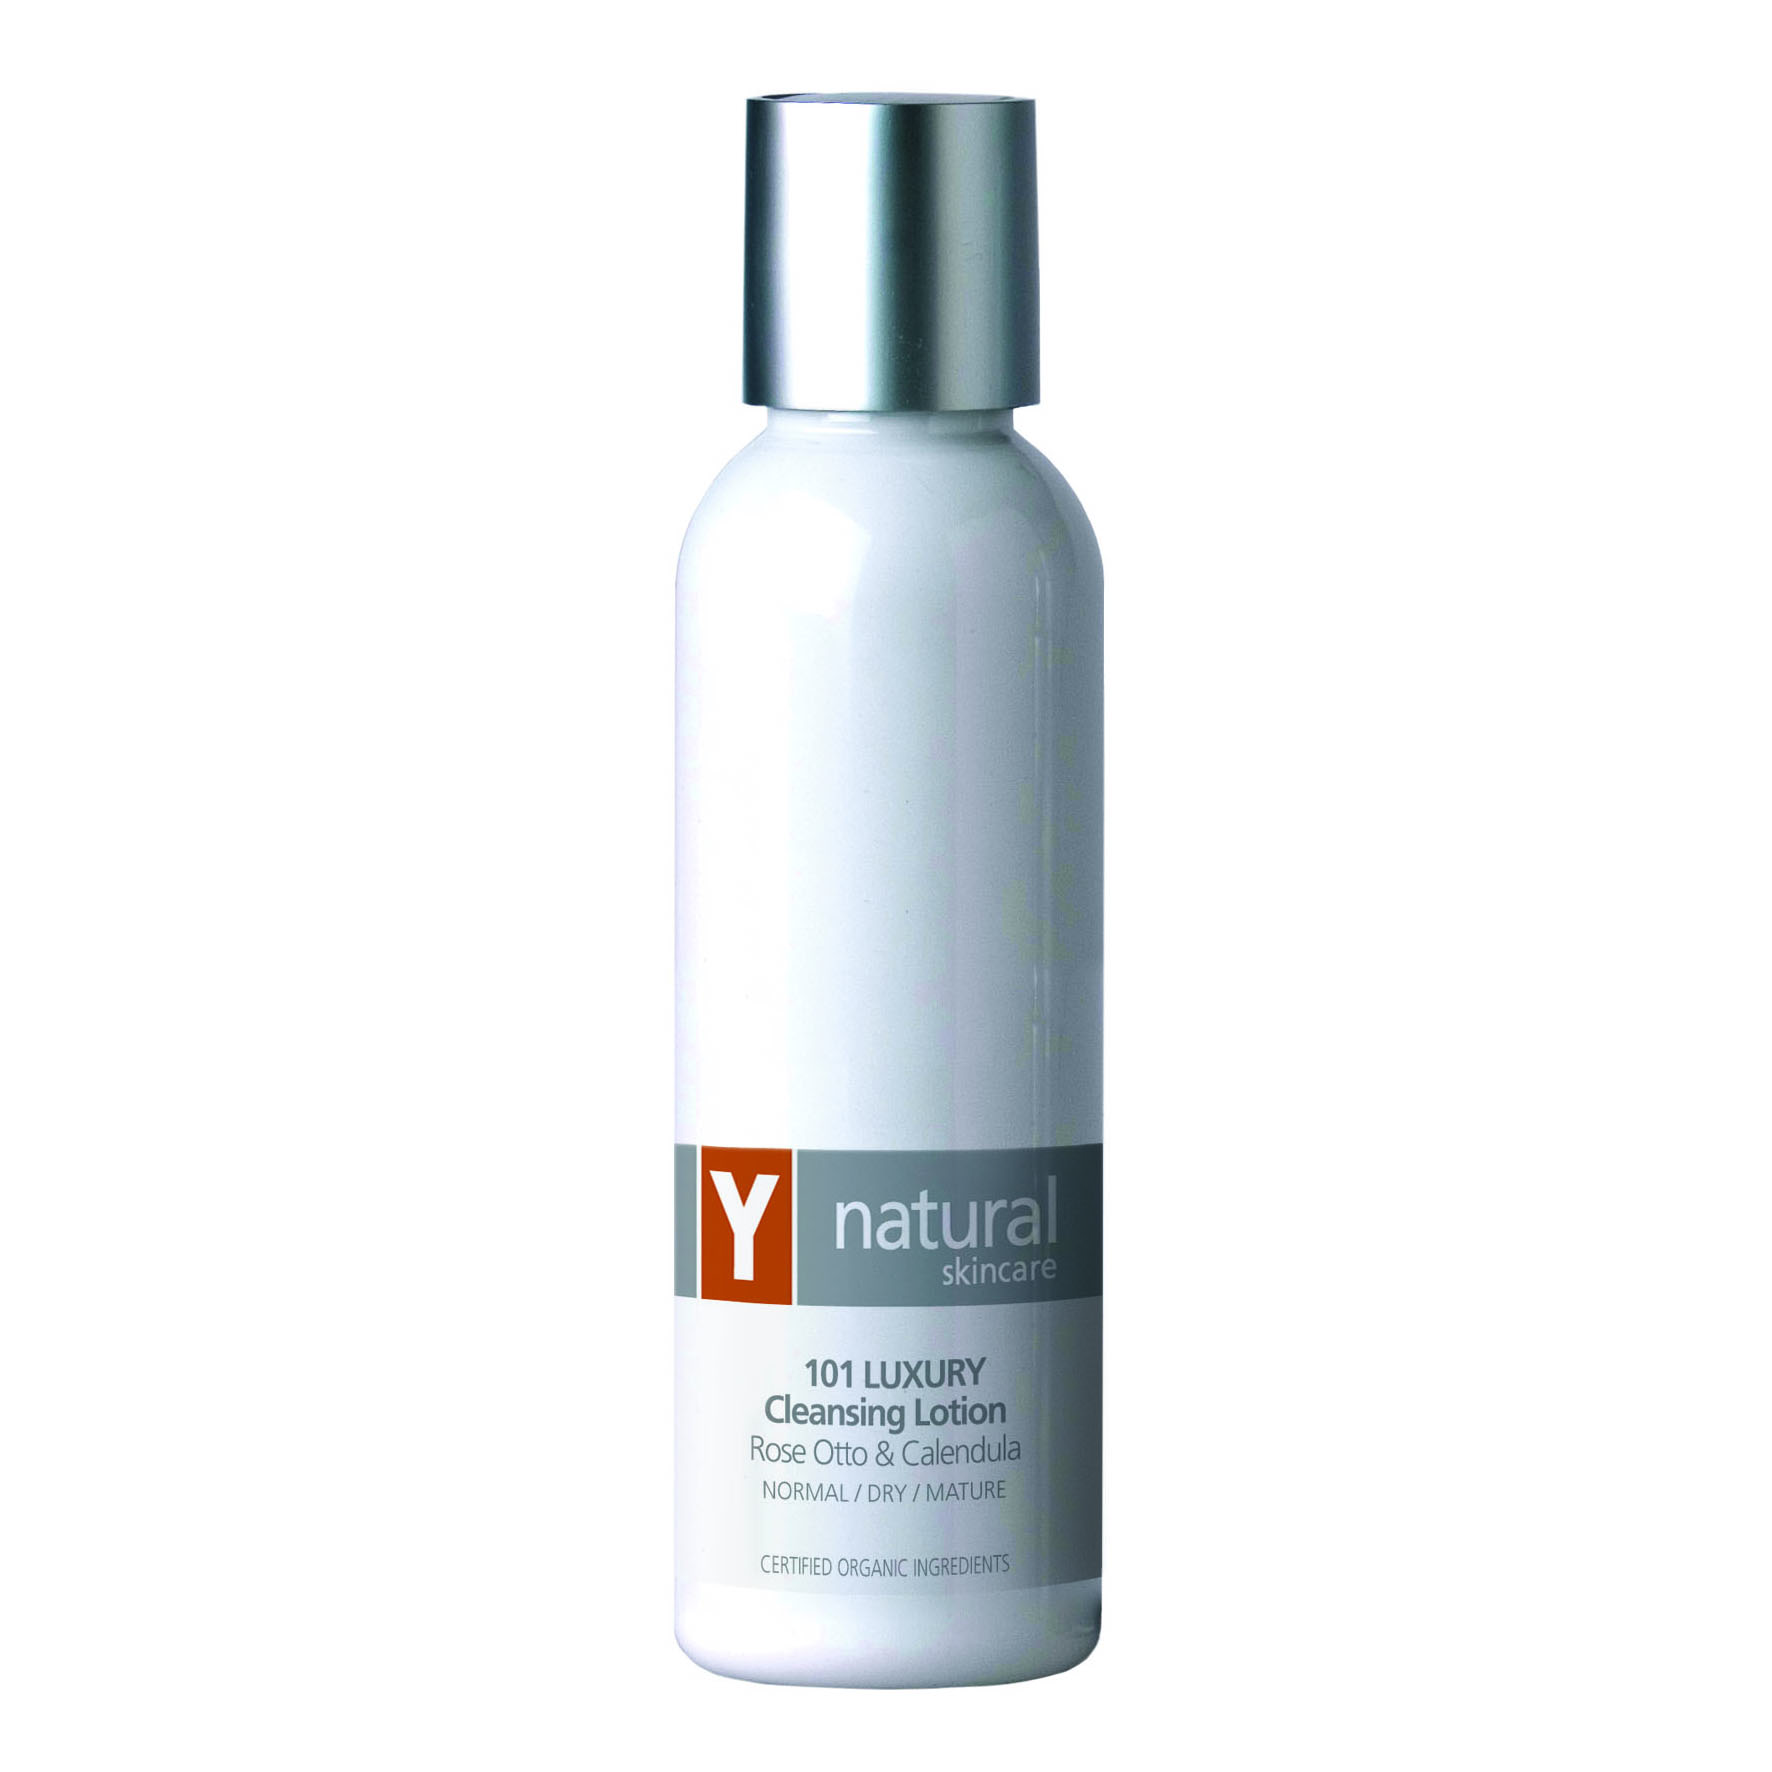 Y natural 101 LUXURY Cleansing Lotion Rose Otto and Calendula 125ml